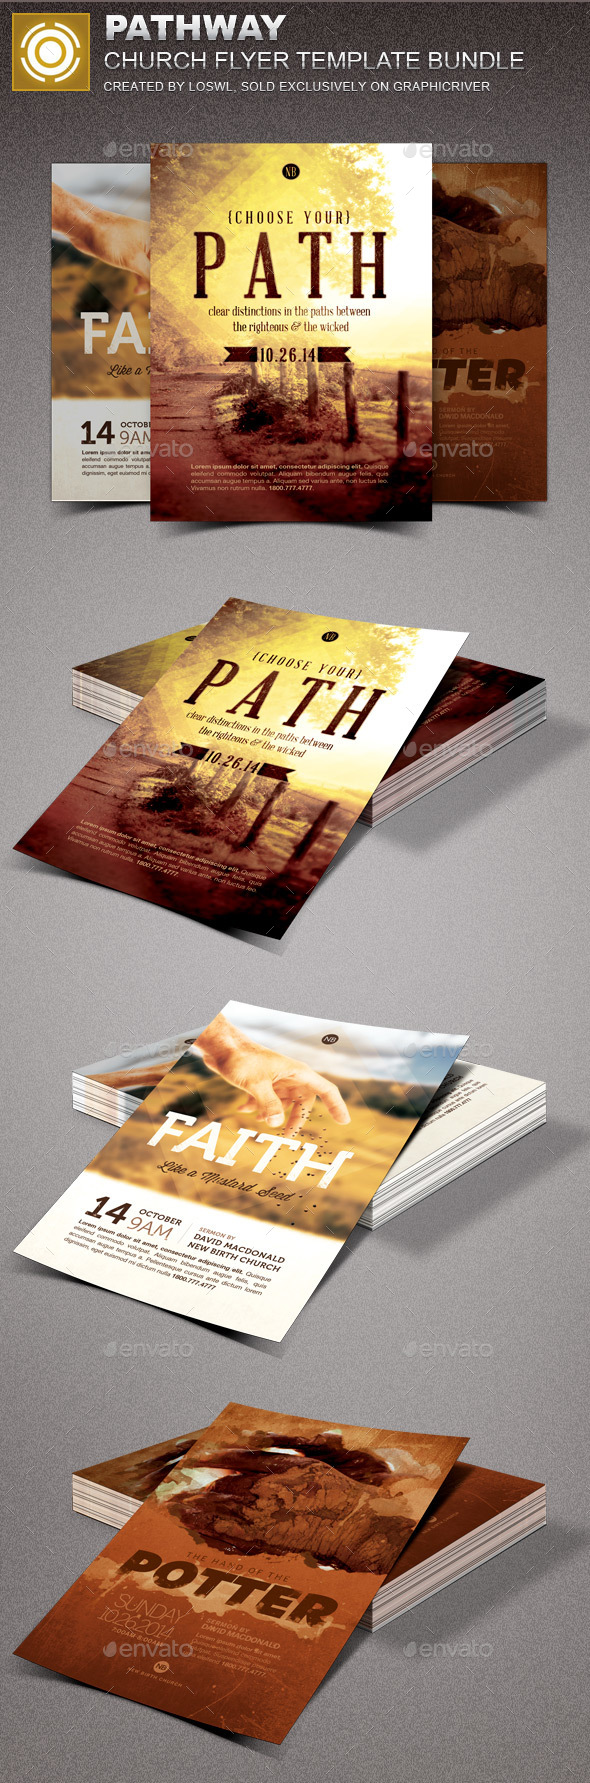 Pathway Church Marketing Flyer Bundle - Church Flyers